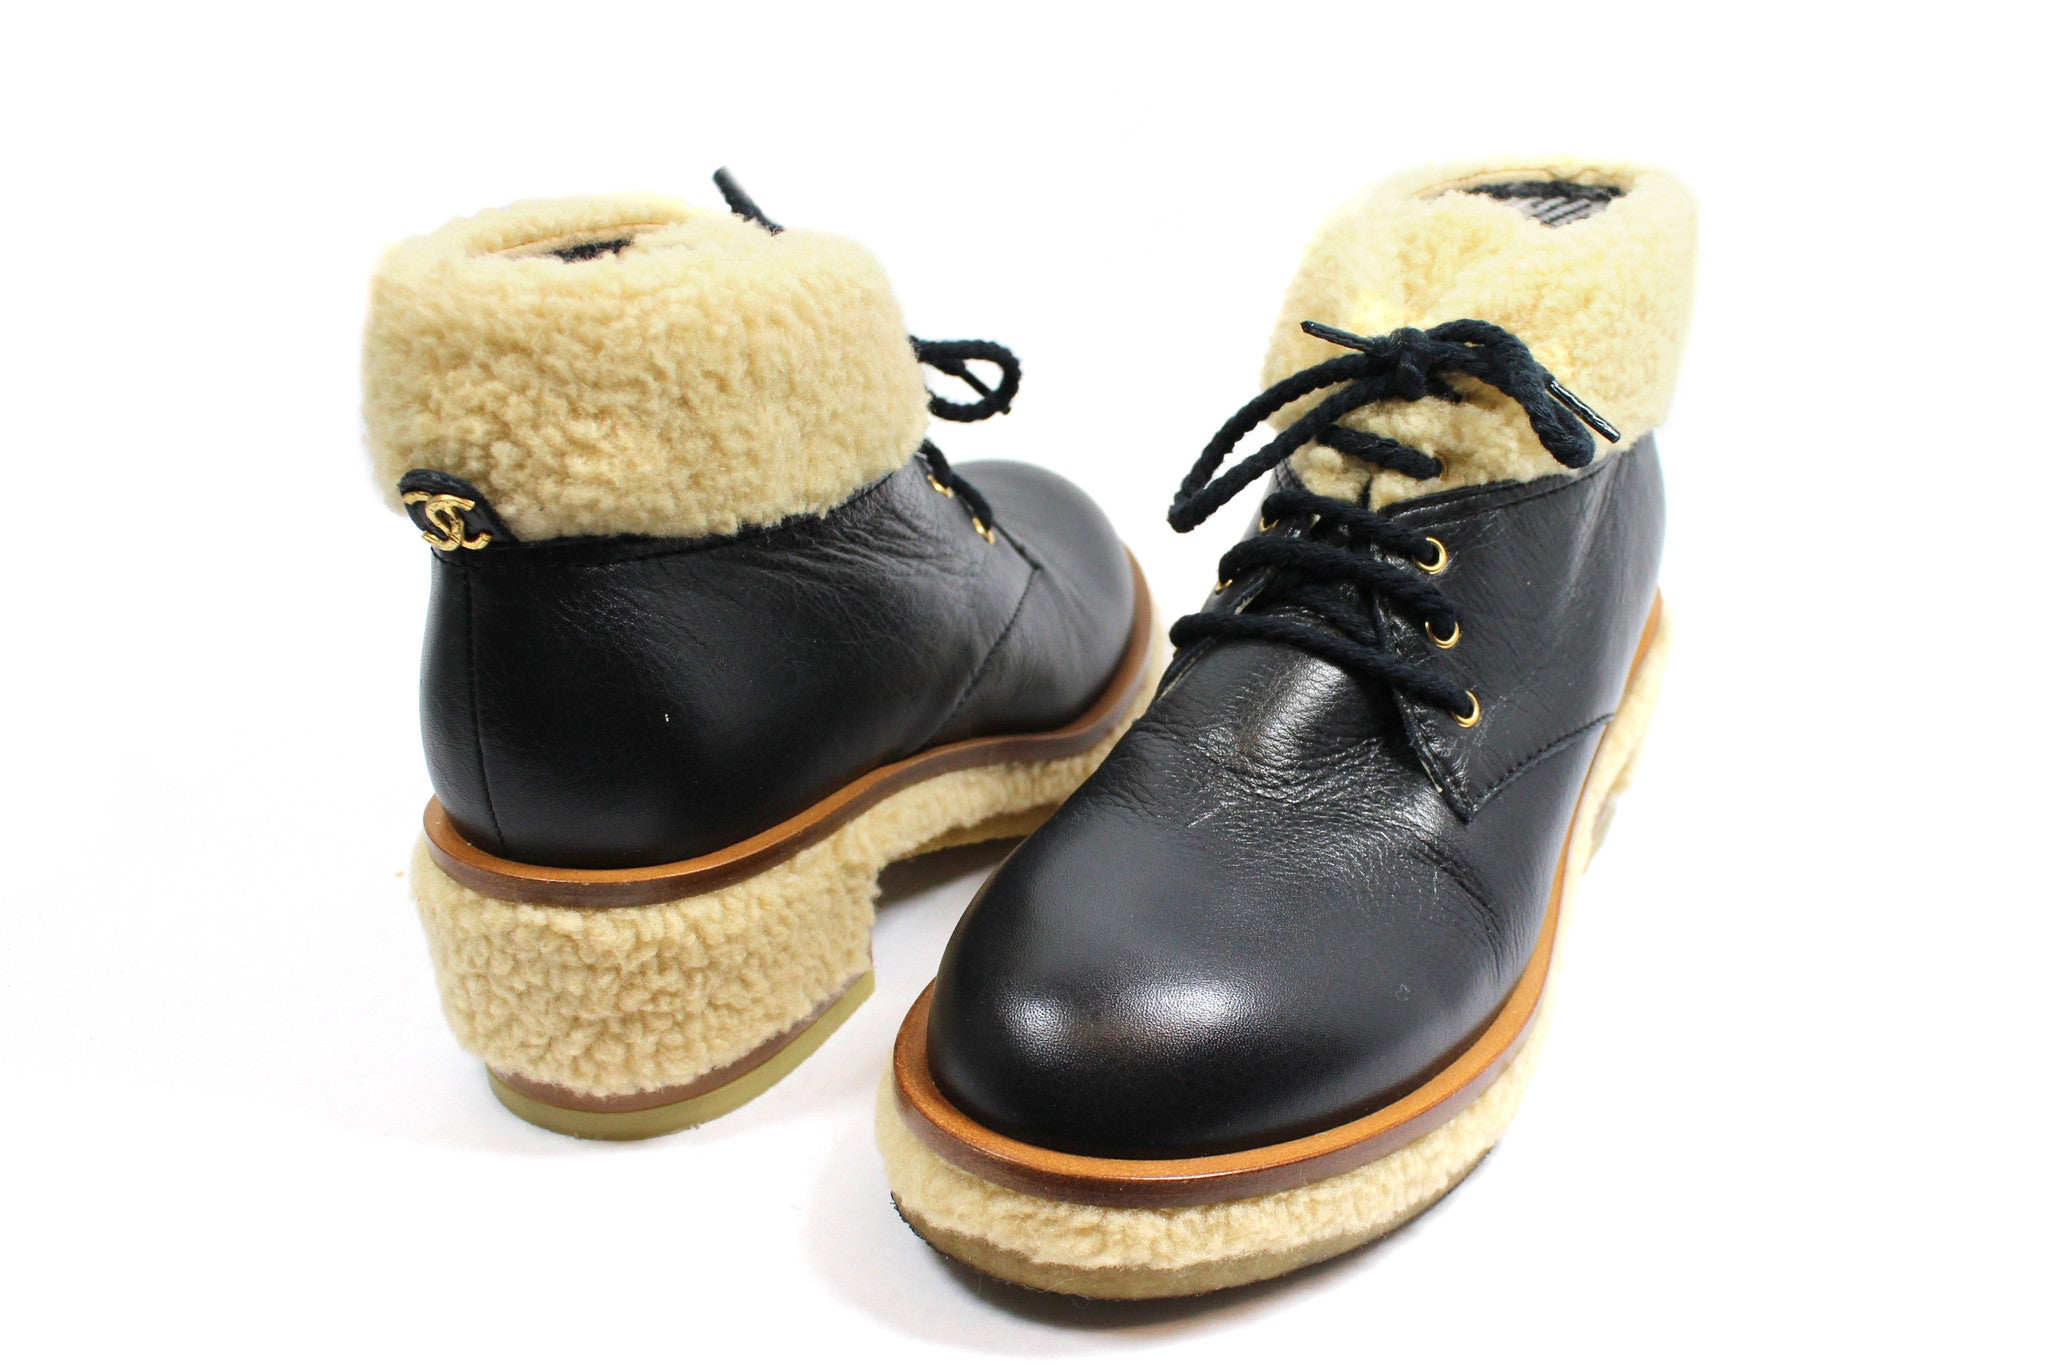 Chanel Leather Lace-Up Booties with Fur Trim (Size 39.5) - Encore Consignment - 2